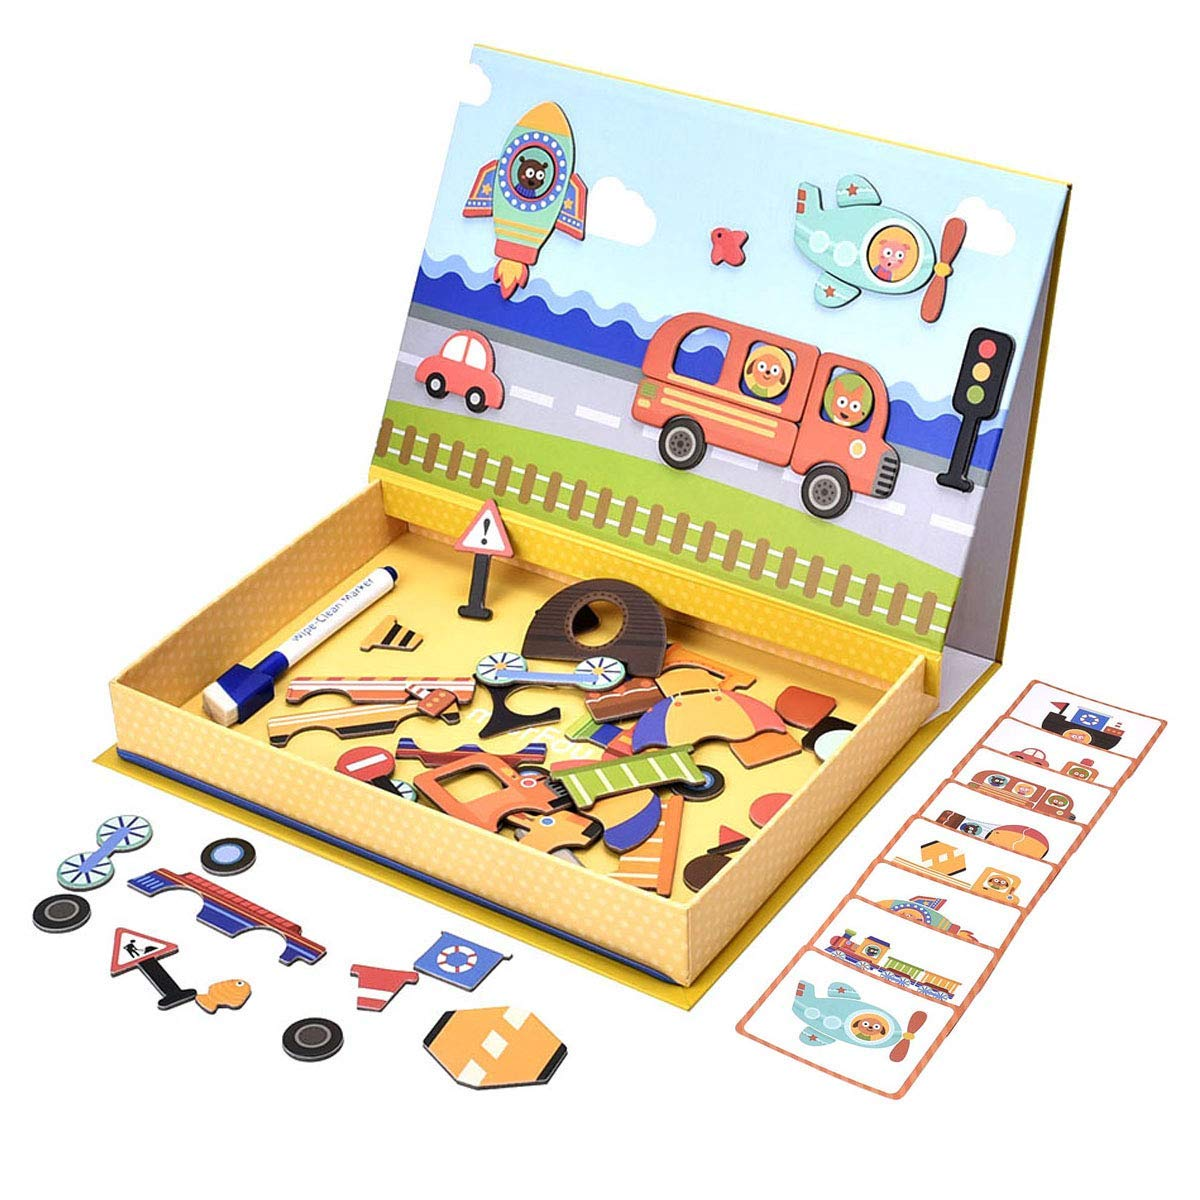 YIHUNION STEM Educational Toys Magnetic Puzzles for Kids, 57 Pieces Dry Erase Board Vehicle Jigsaw Puzzles Cardboard Drawing Board Learning Toys for Preschool Toddlers